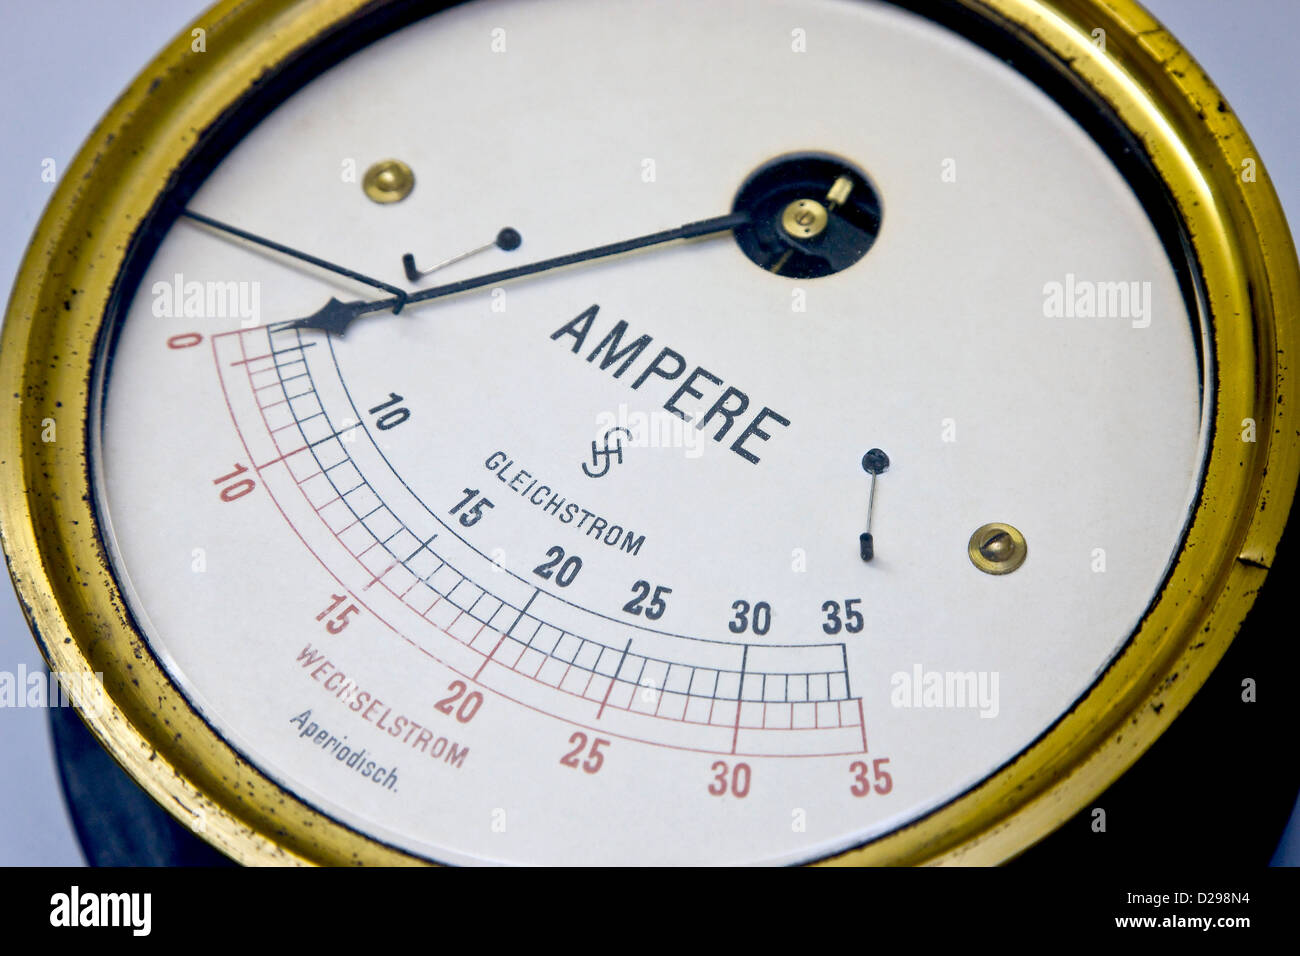 Old vintage ampere meter Stock Photo: 53064848 - Alamy